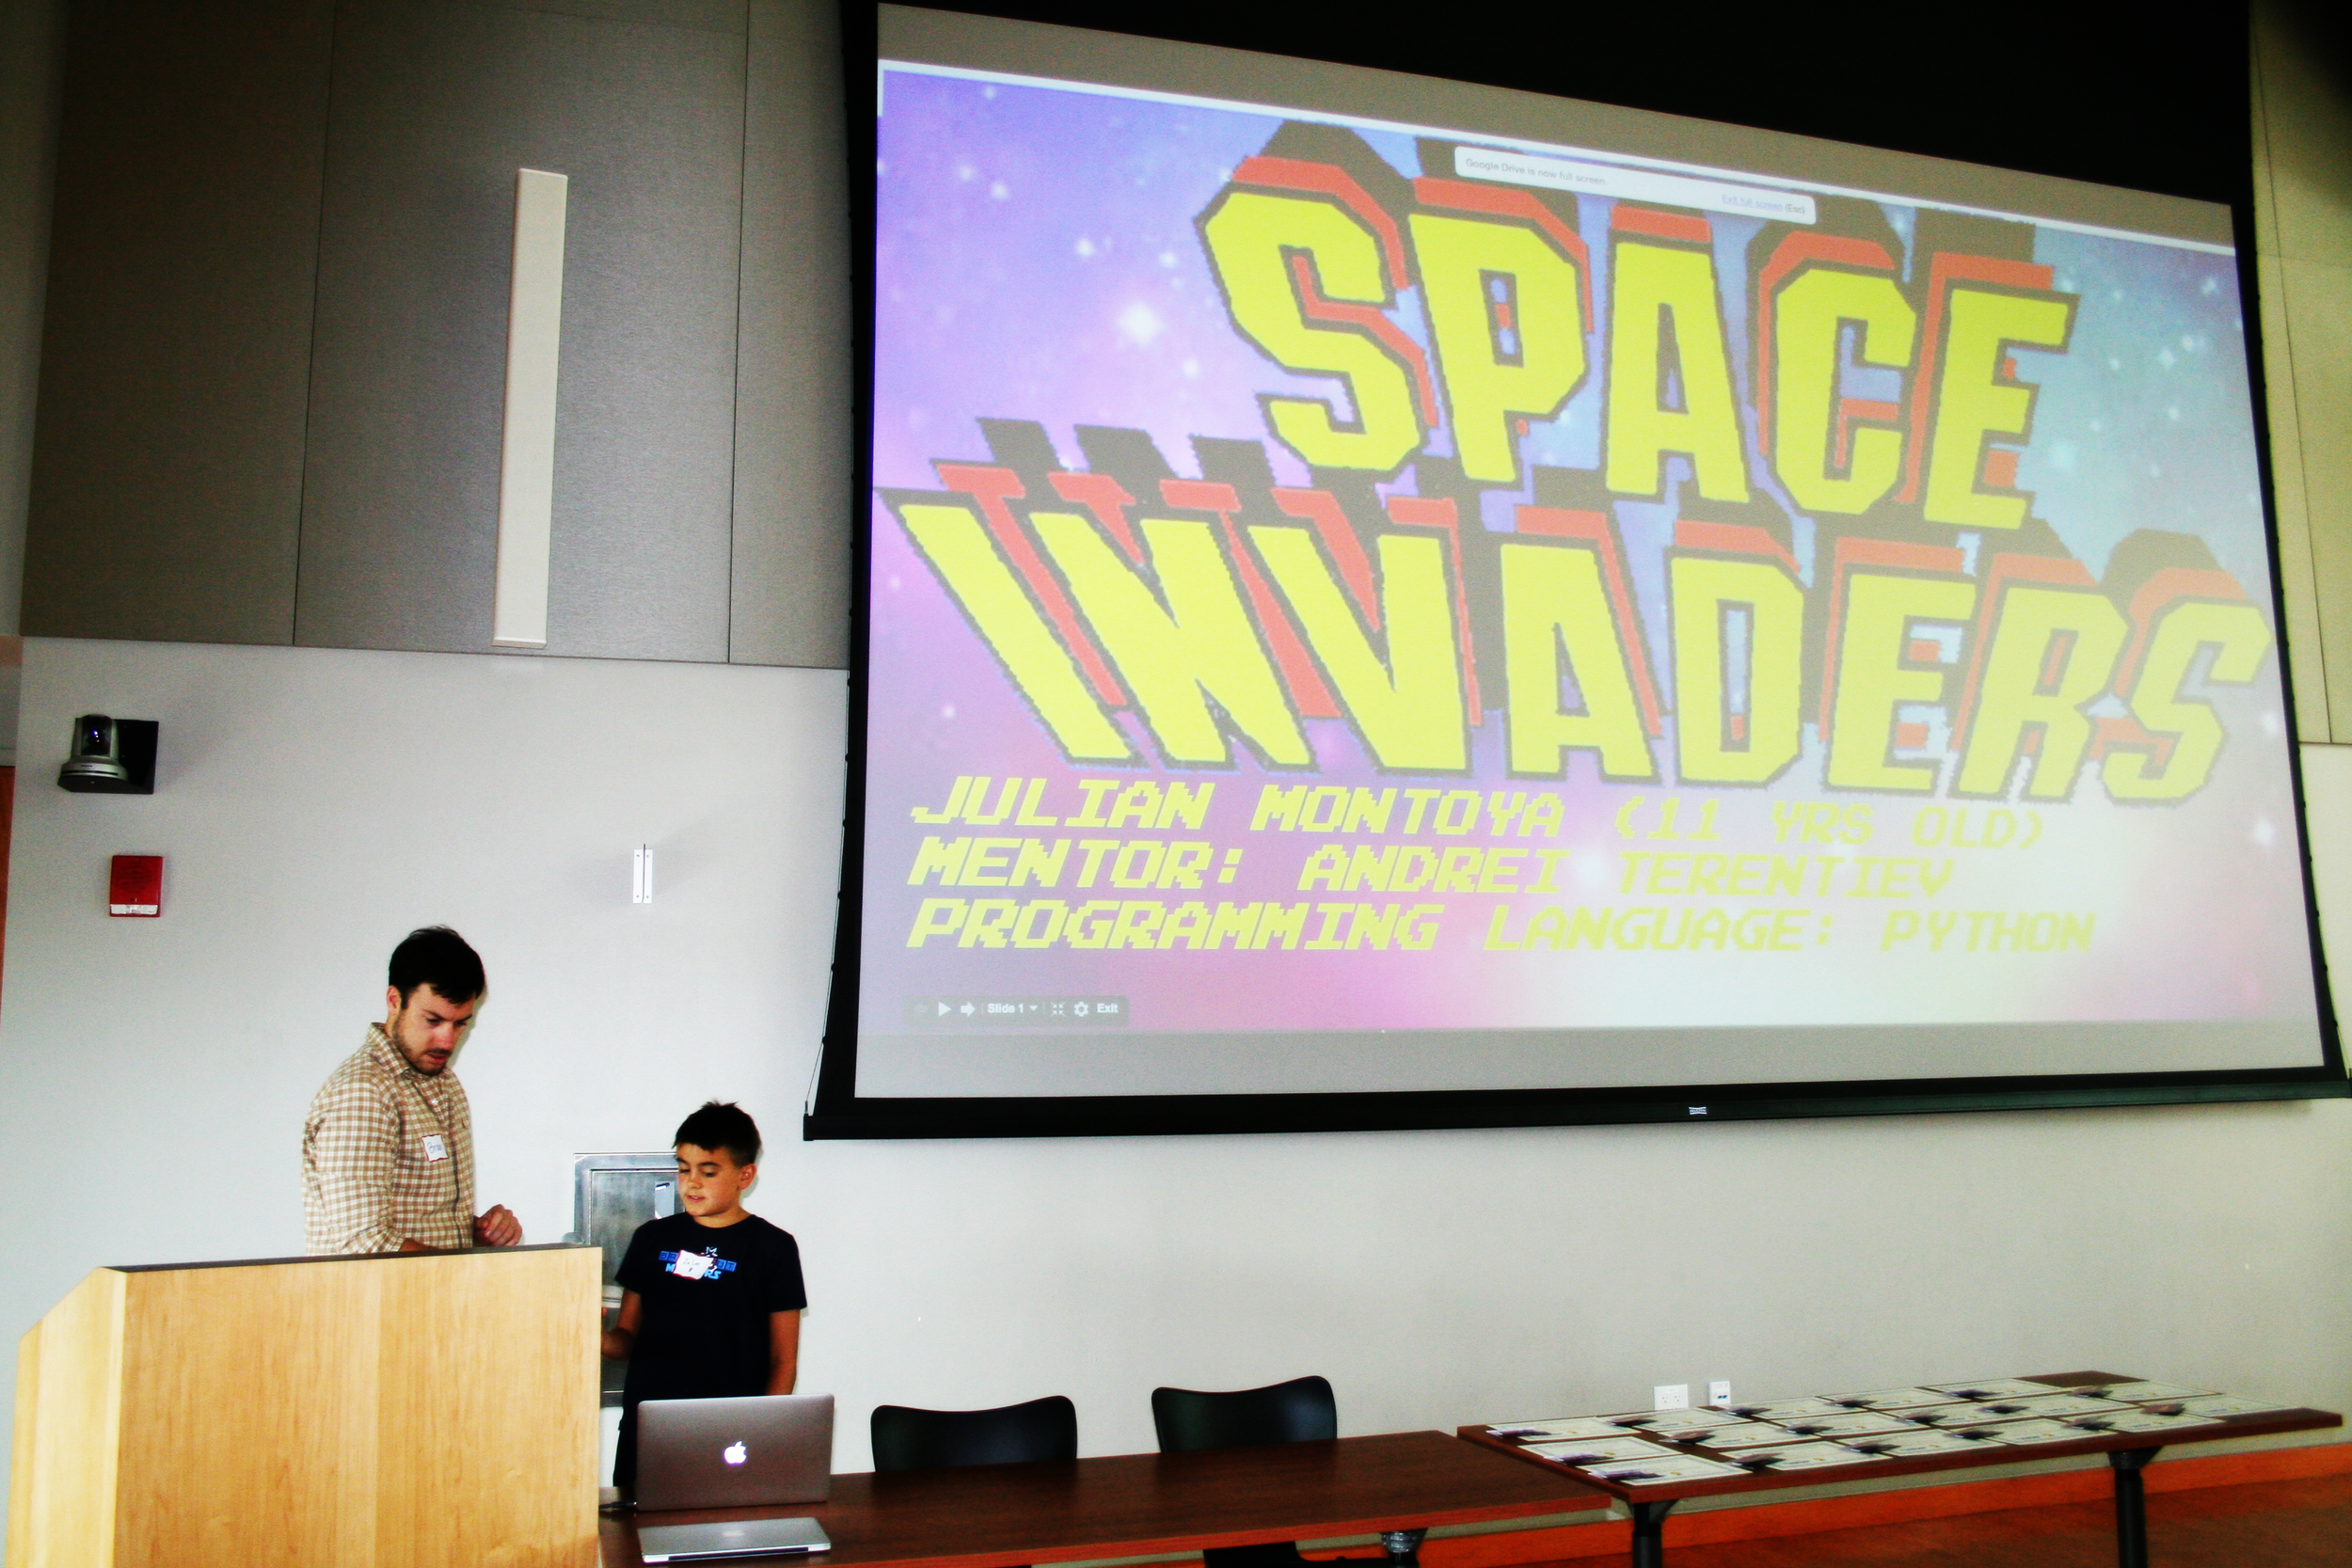 Brian Skinner with Julian Montoya, presenting his Space Invaders game